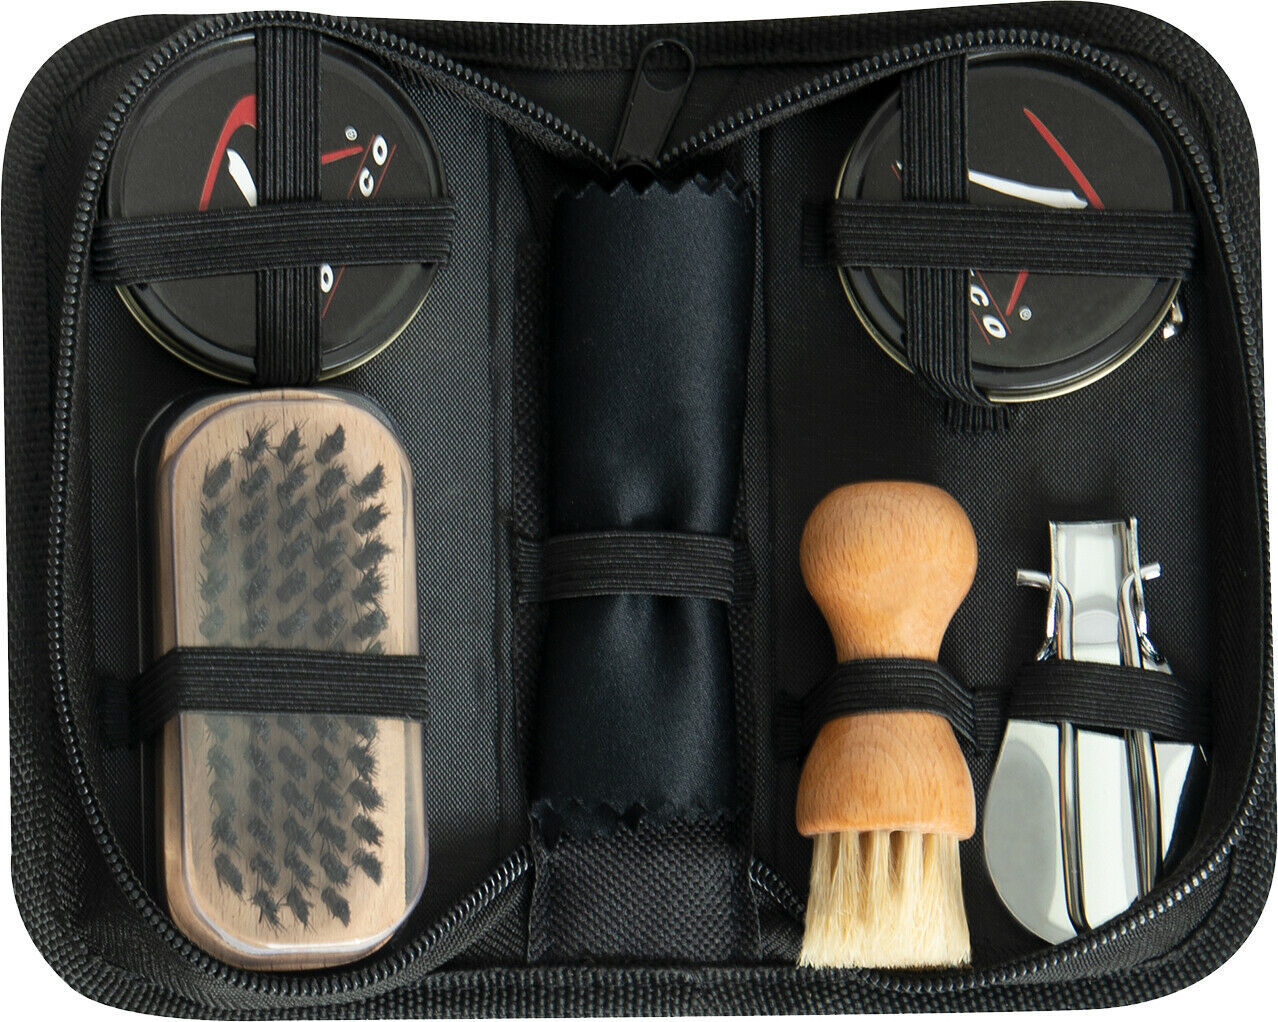 Primary image for Compact Shoe Care Kit - Clean Fix Enhance Polish Uniform Shoes Boots Set